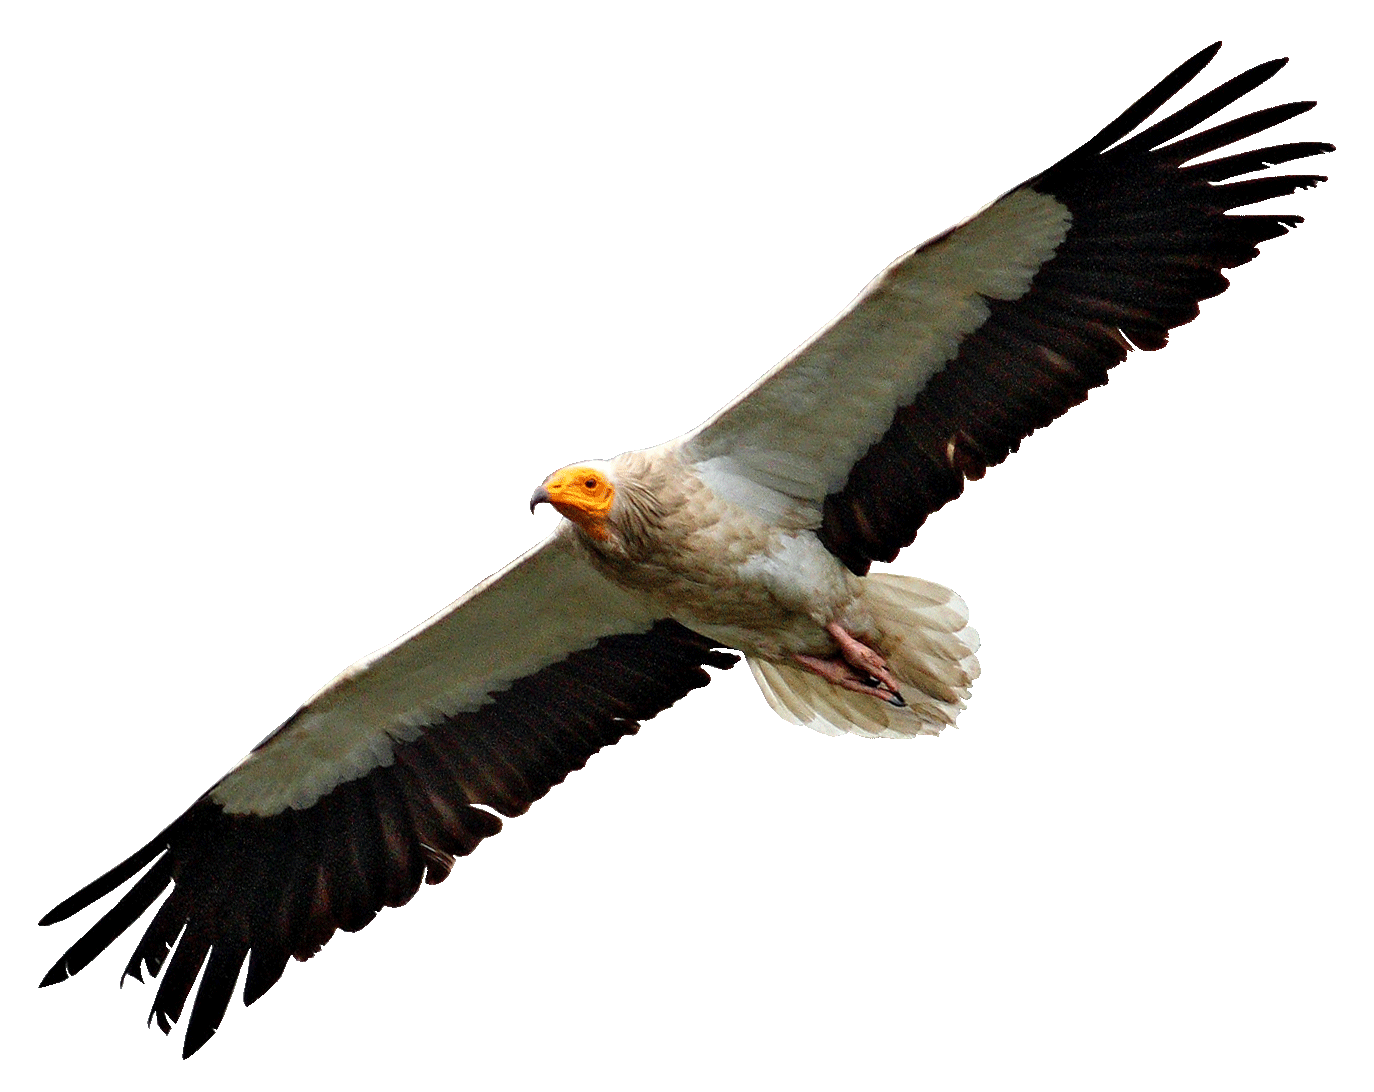 Turkey vulture clipart png black and white Vultures transparent PNG images - StickPNG png black and white